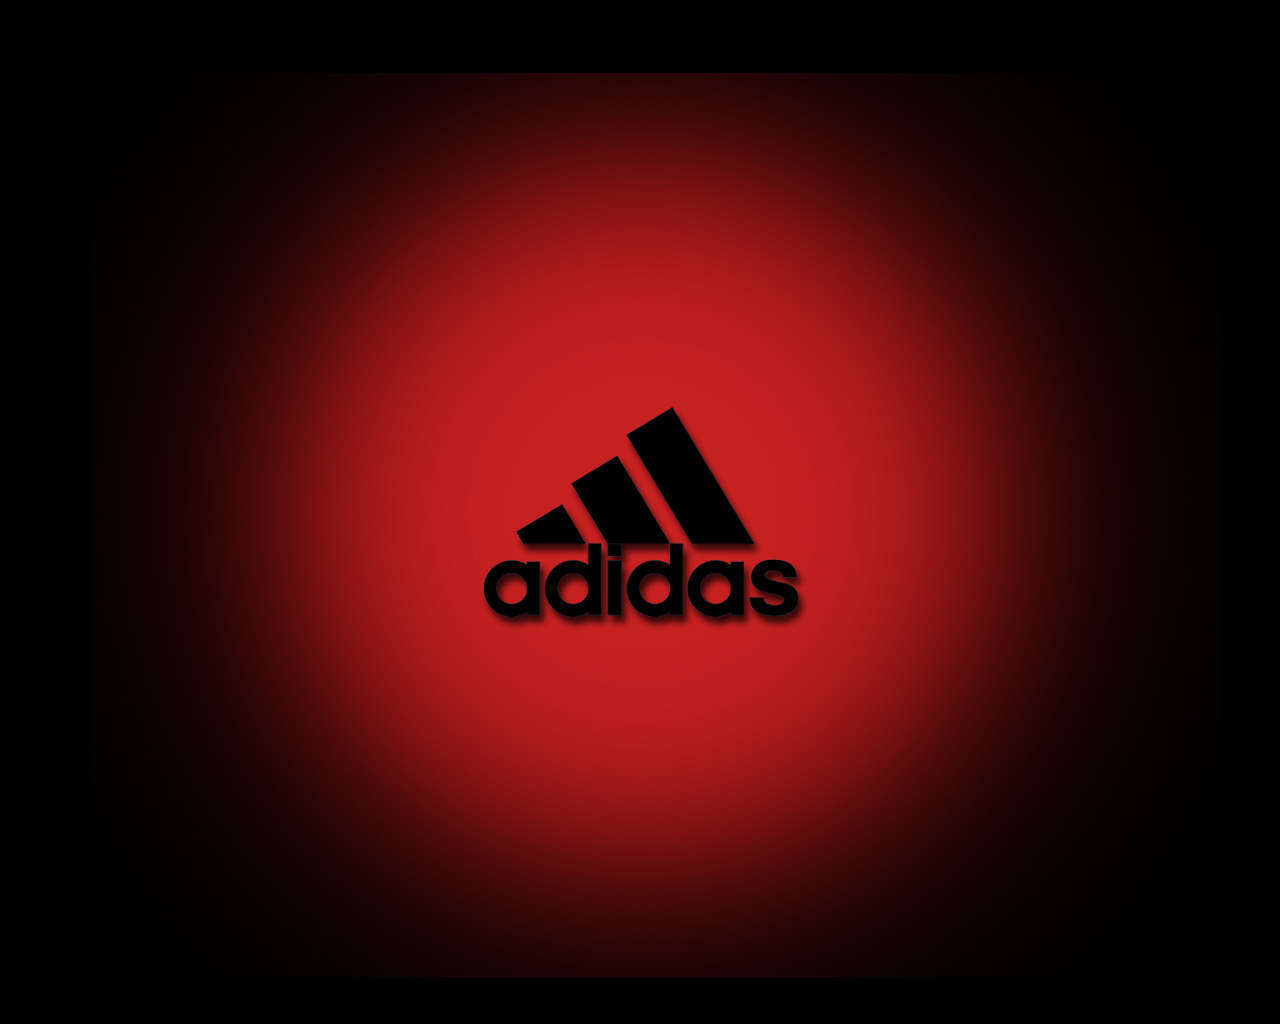 Free download red adidas logo wallpapers hd 34 backgrounds